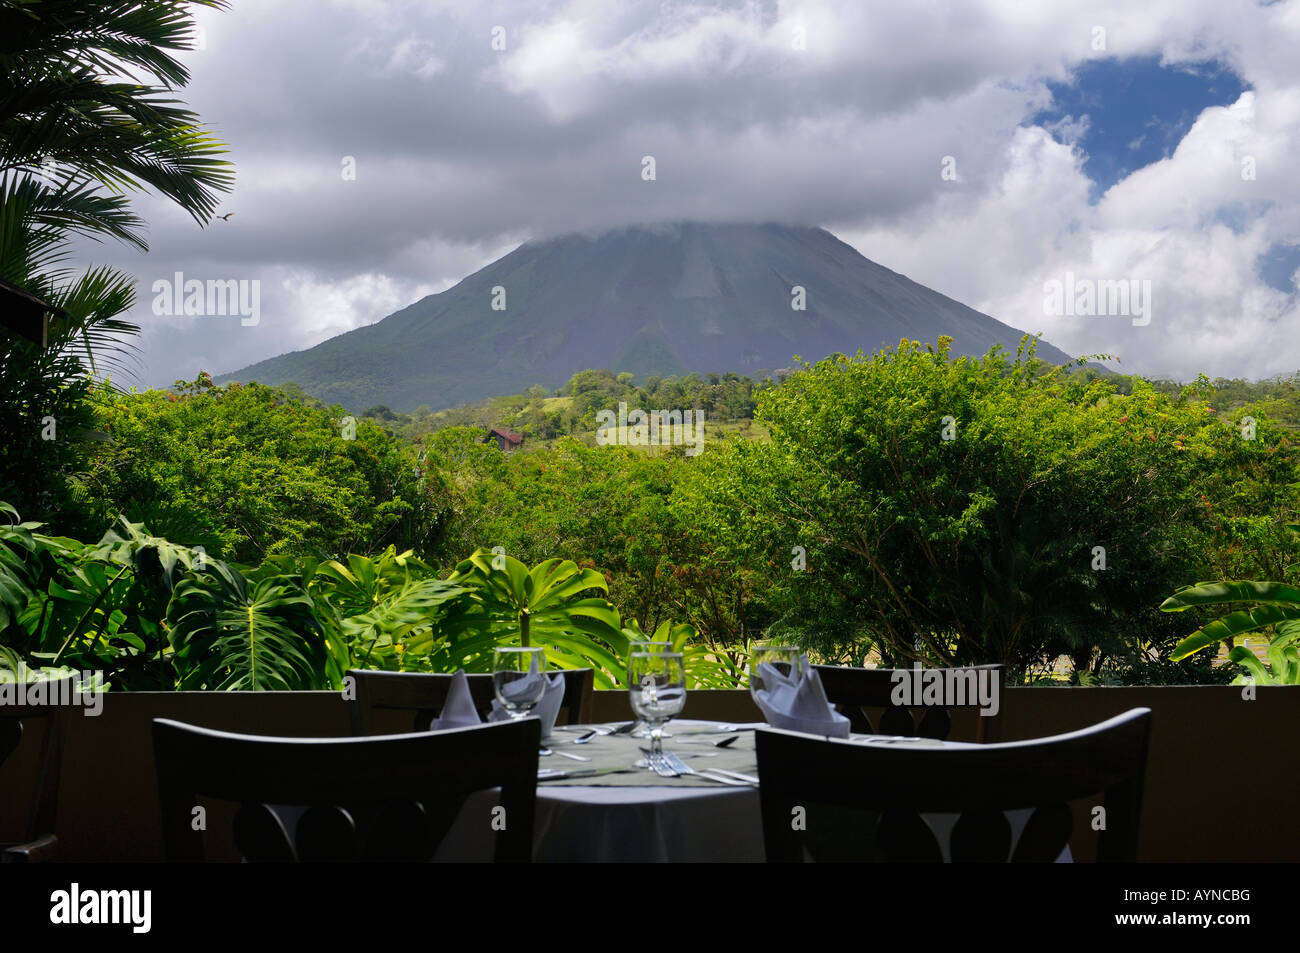 Arenal Volcano seen from the restaurant tables at the Paraiso Resort and Spa - Stock Image